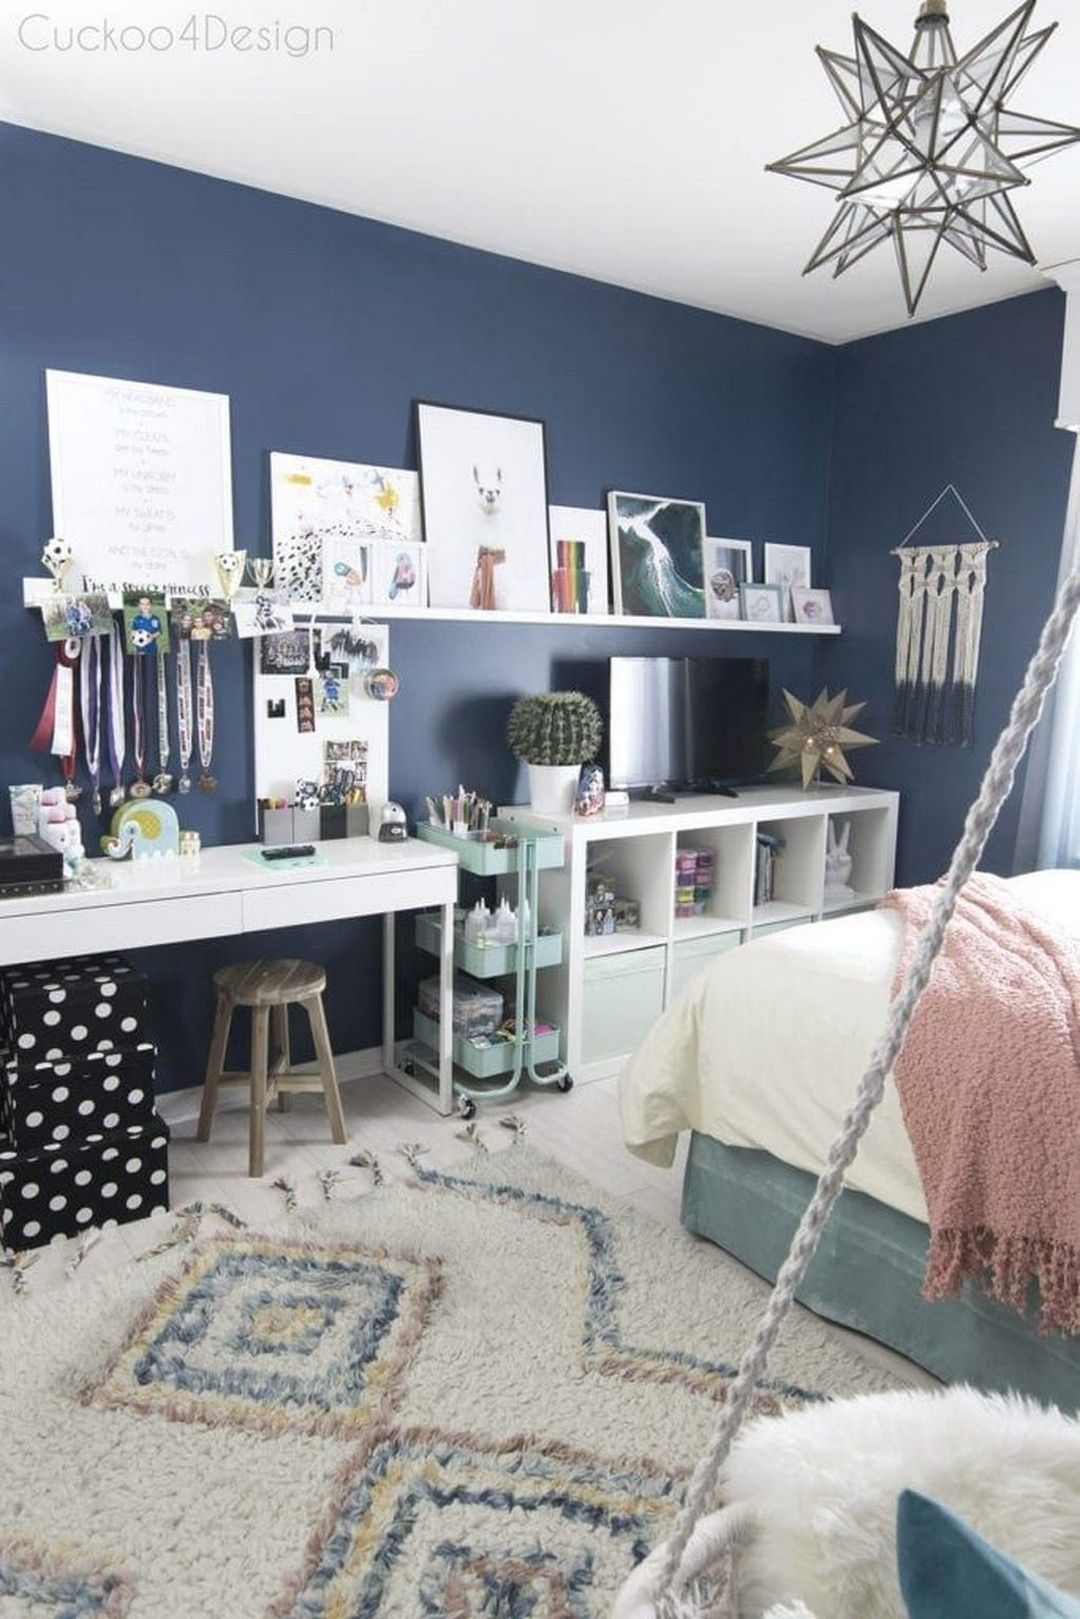 30 Teenage Girl Bedroom Ideas #teenagegirlbedrooms